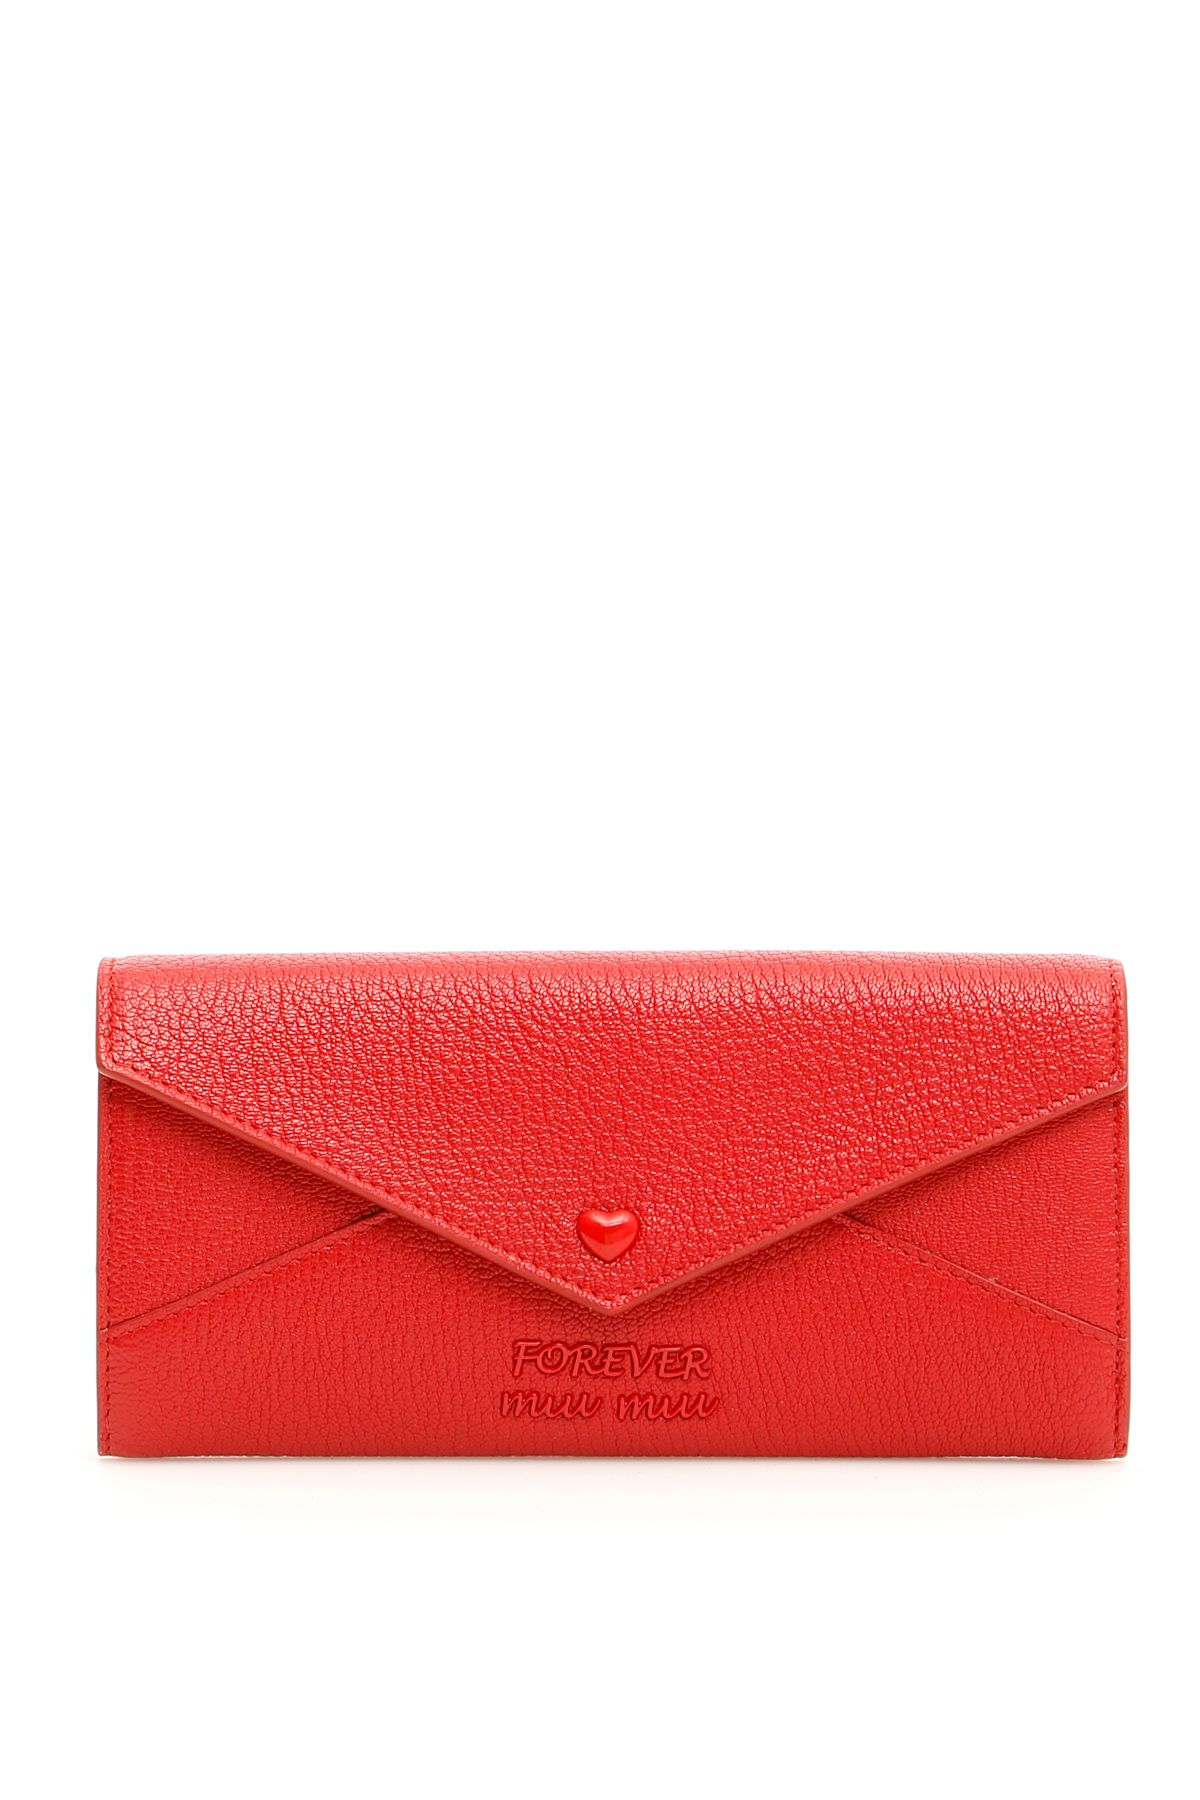 FOREVER MADRAS WALLET